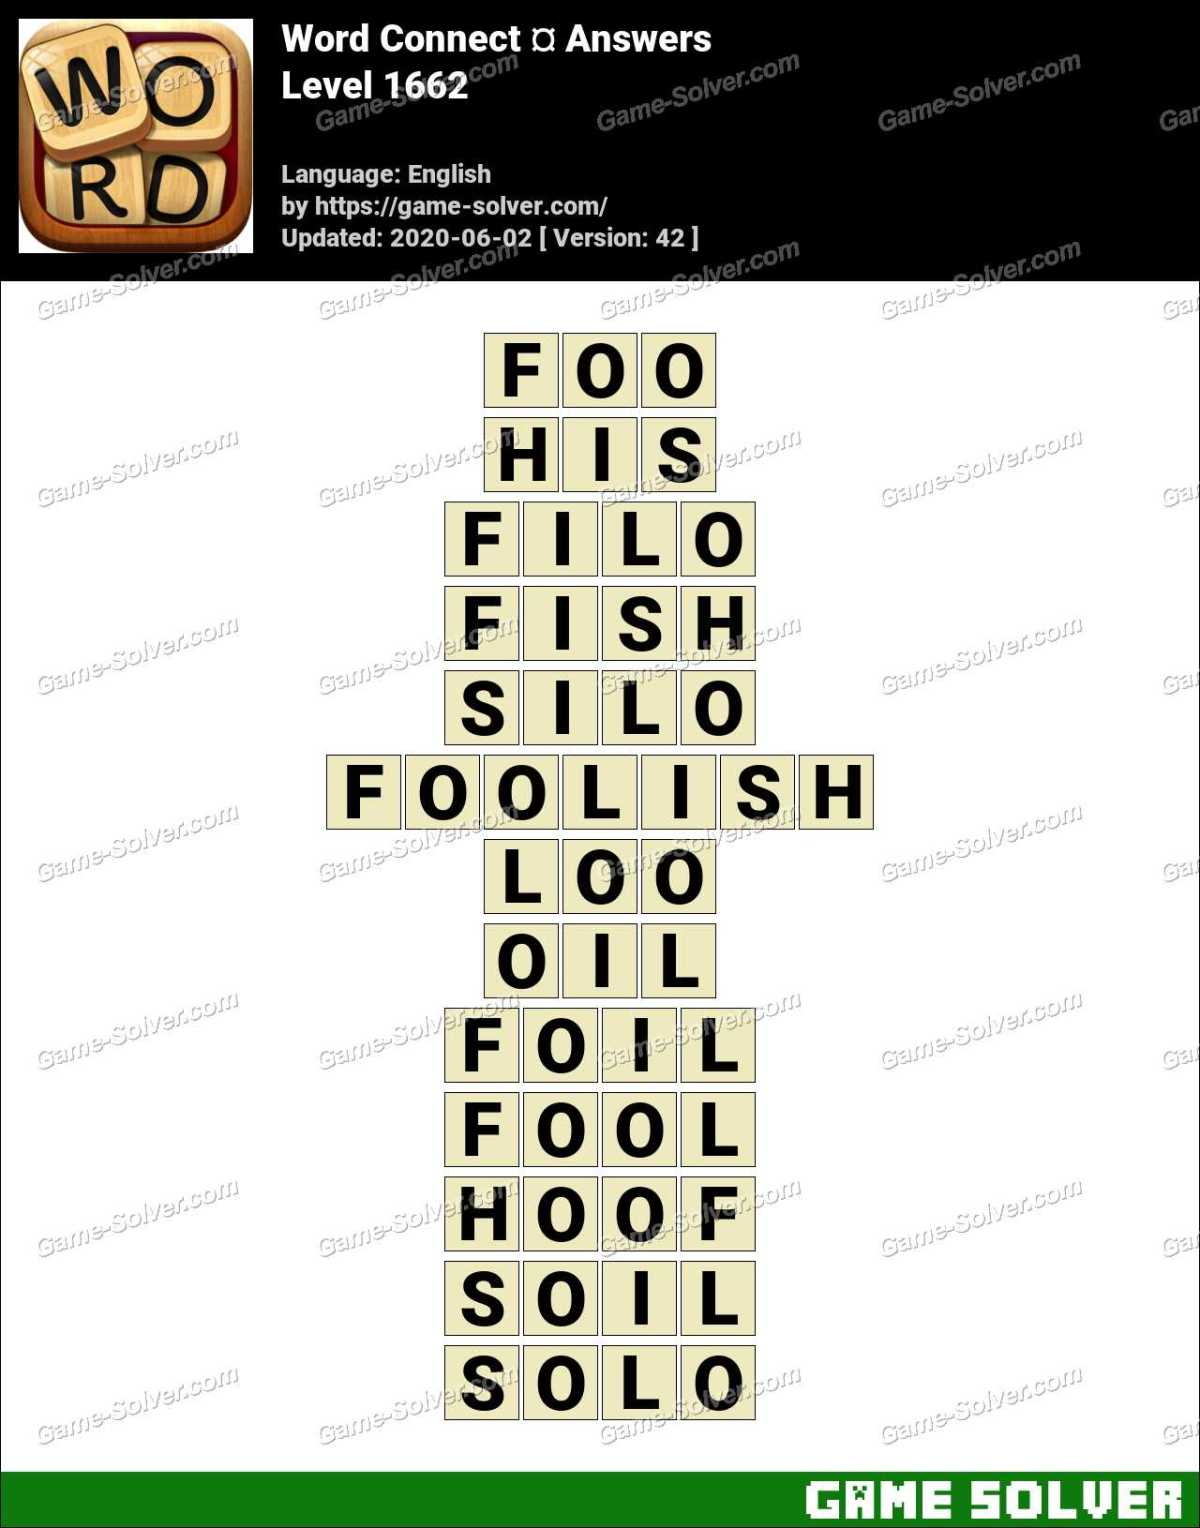 Word Connect Level 1662 Answers